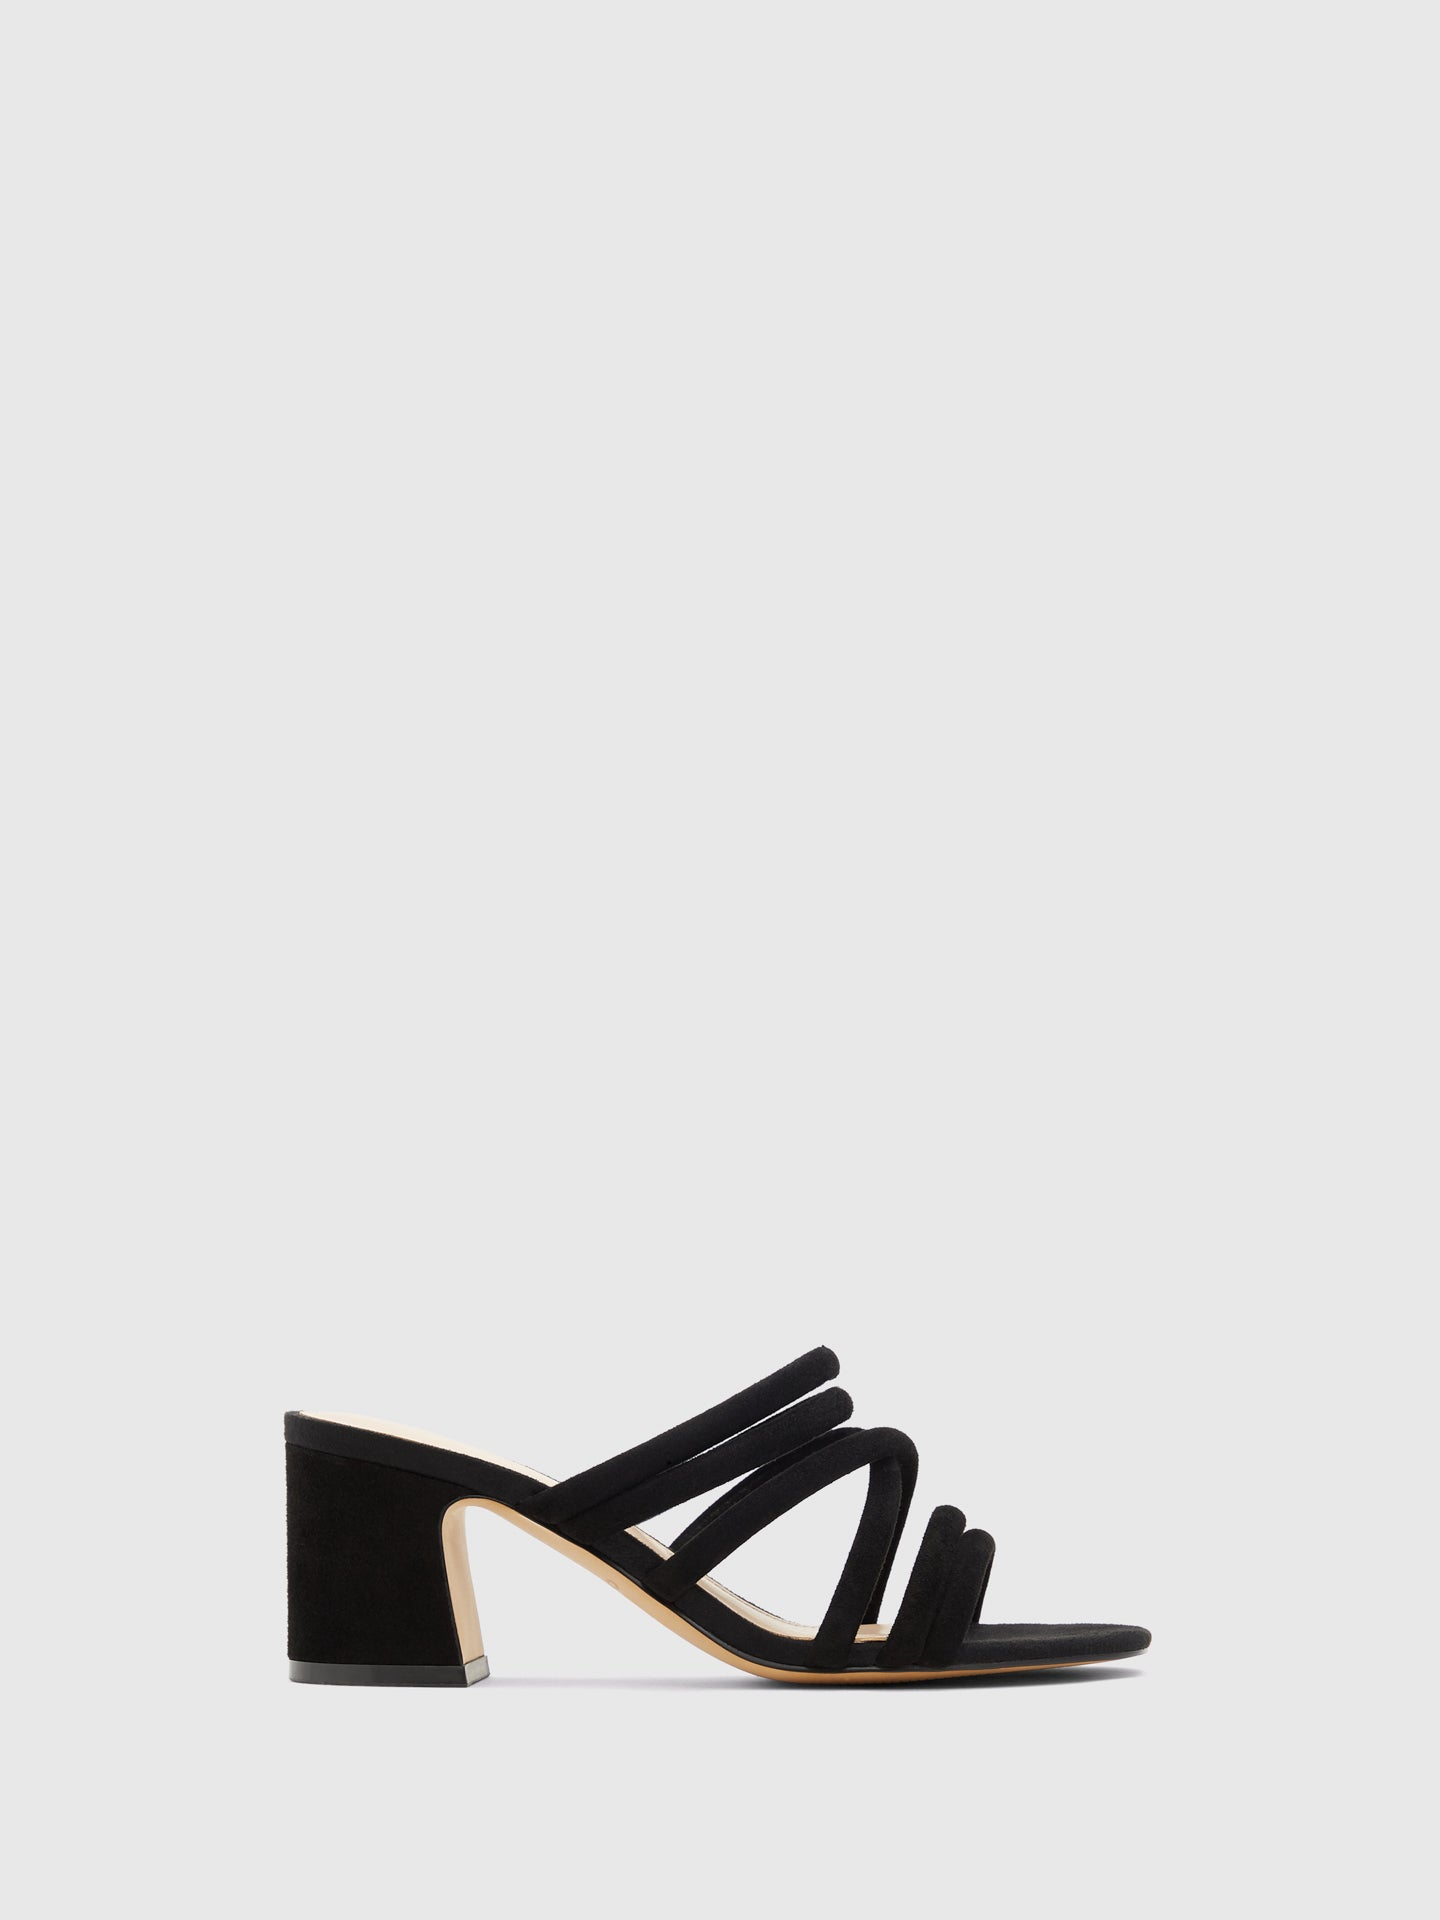 Aldo Black Strappy Mules